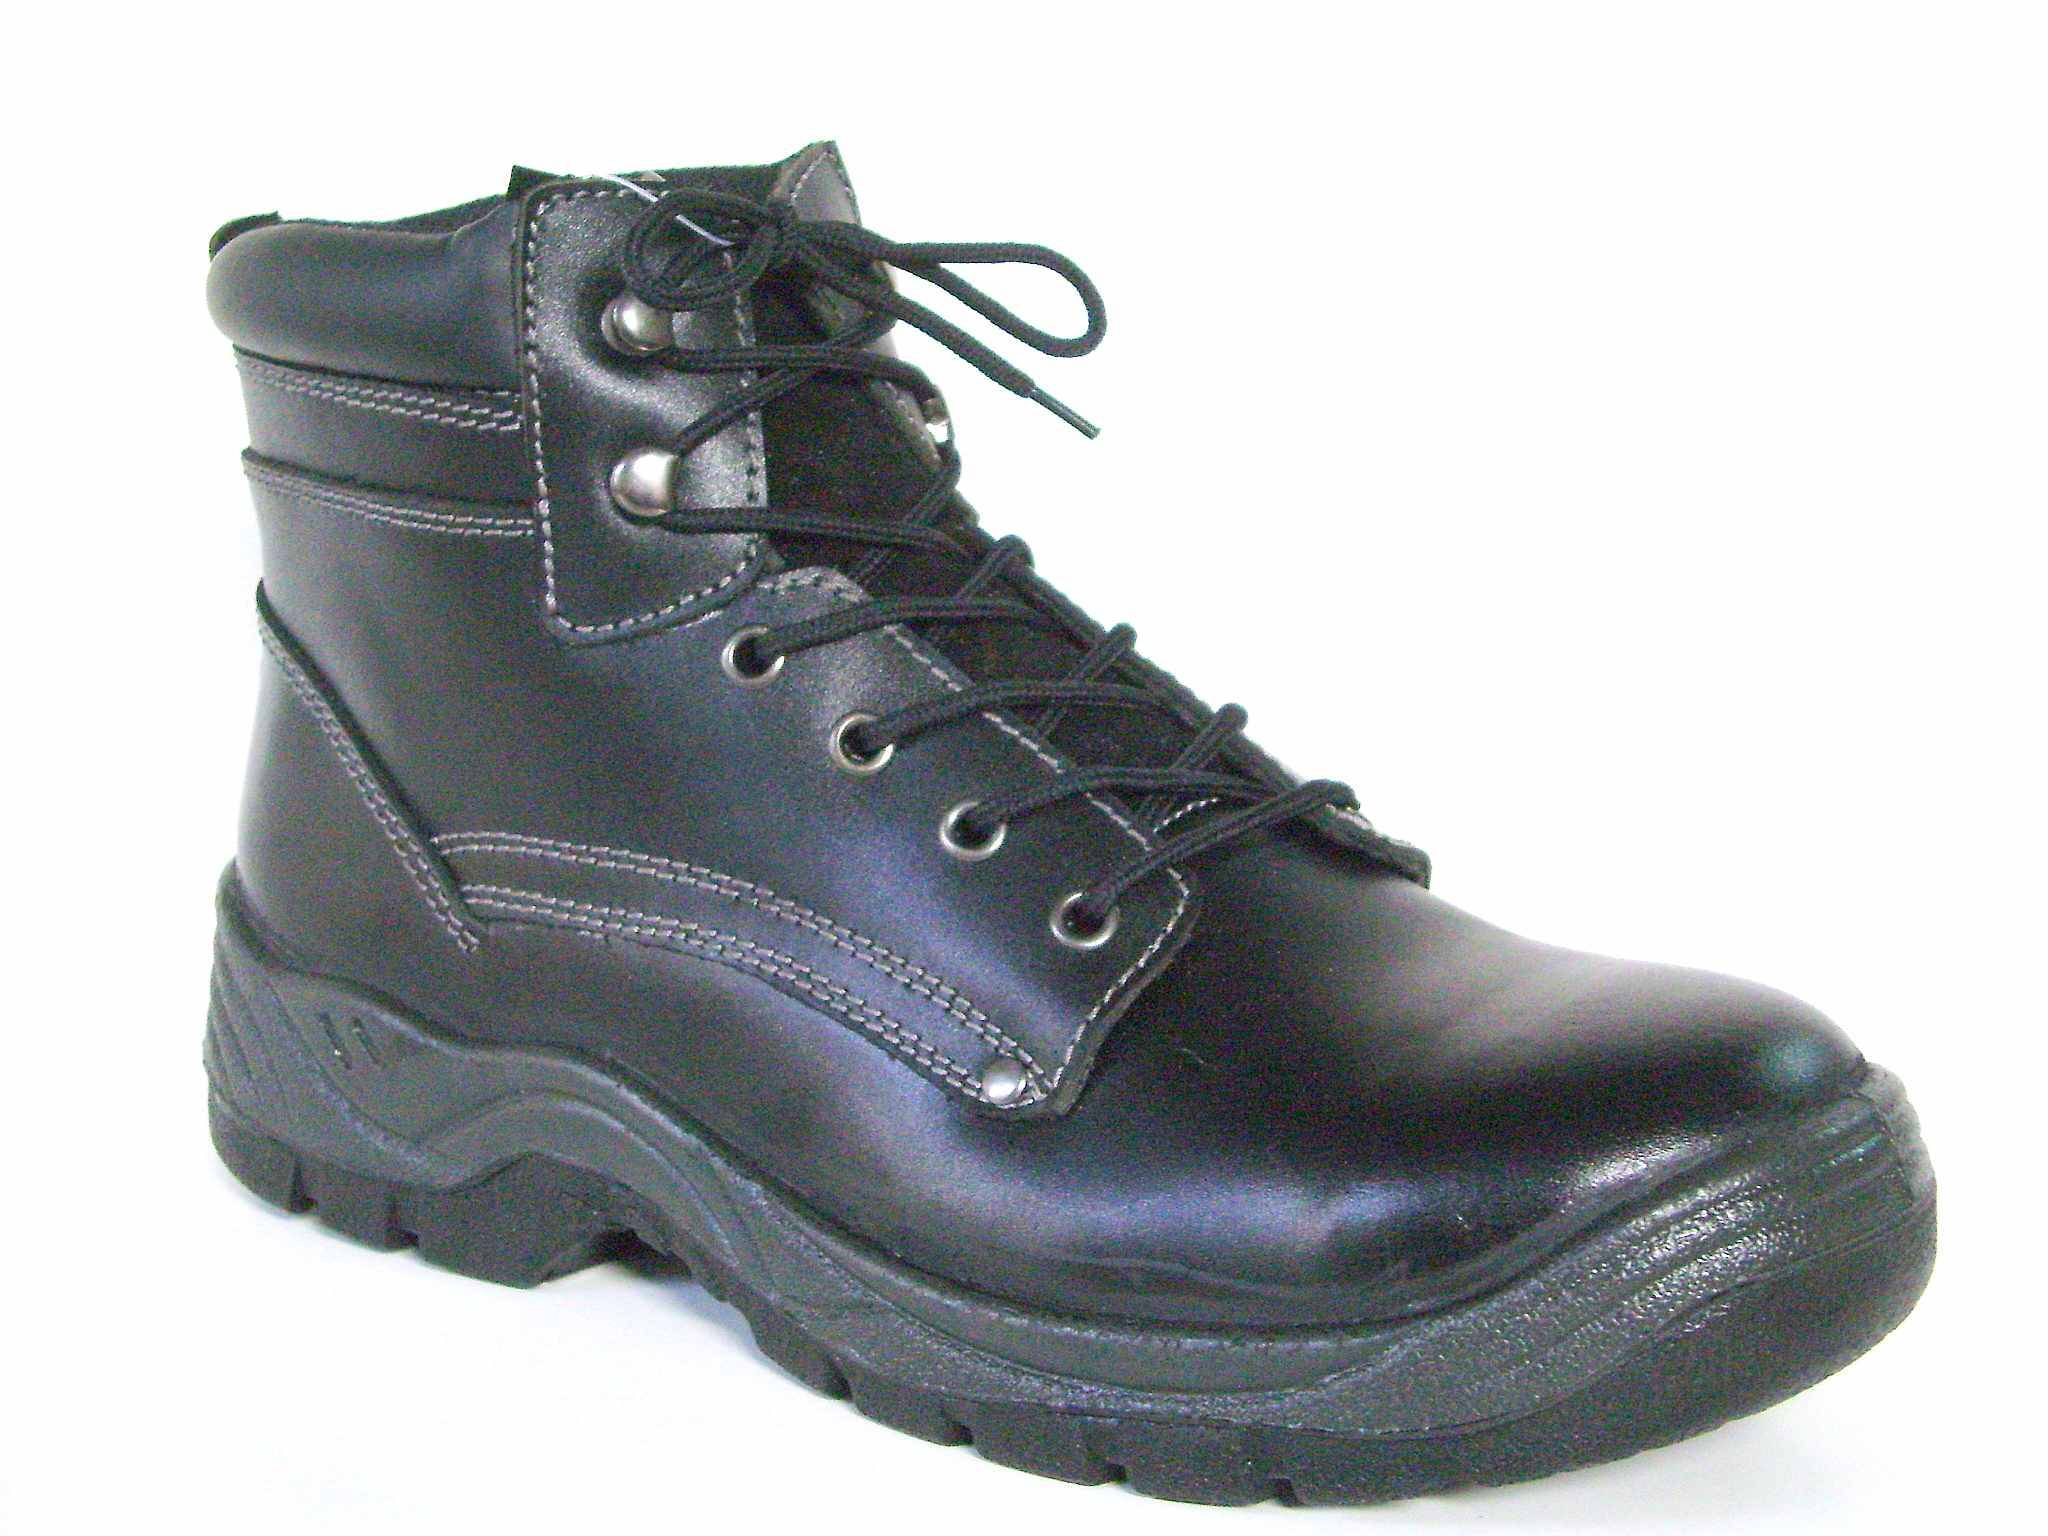 Steel Toe Safety Shoes/Safety Boots (ABP5-1001)